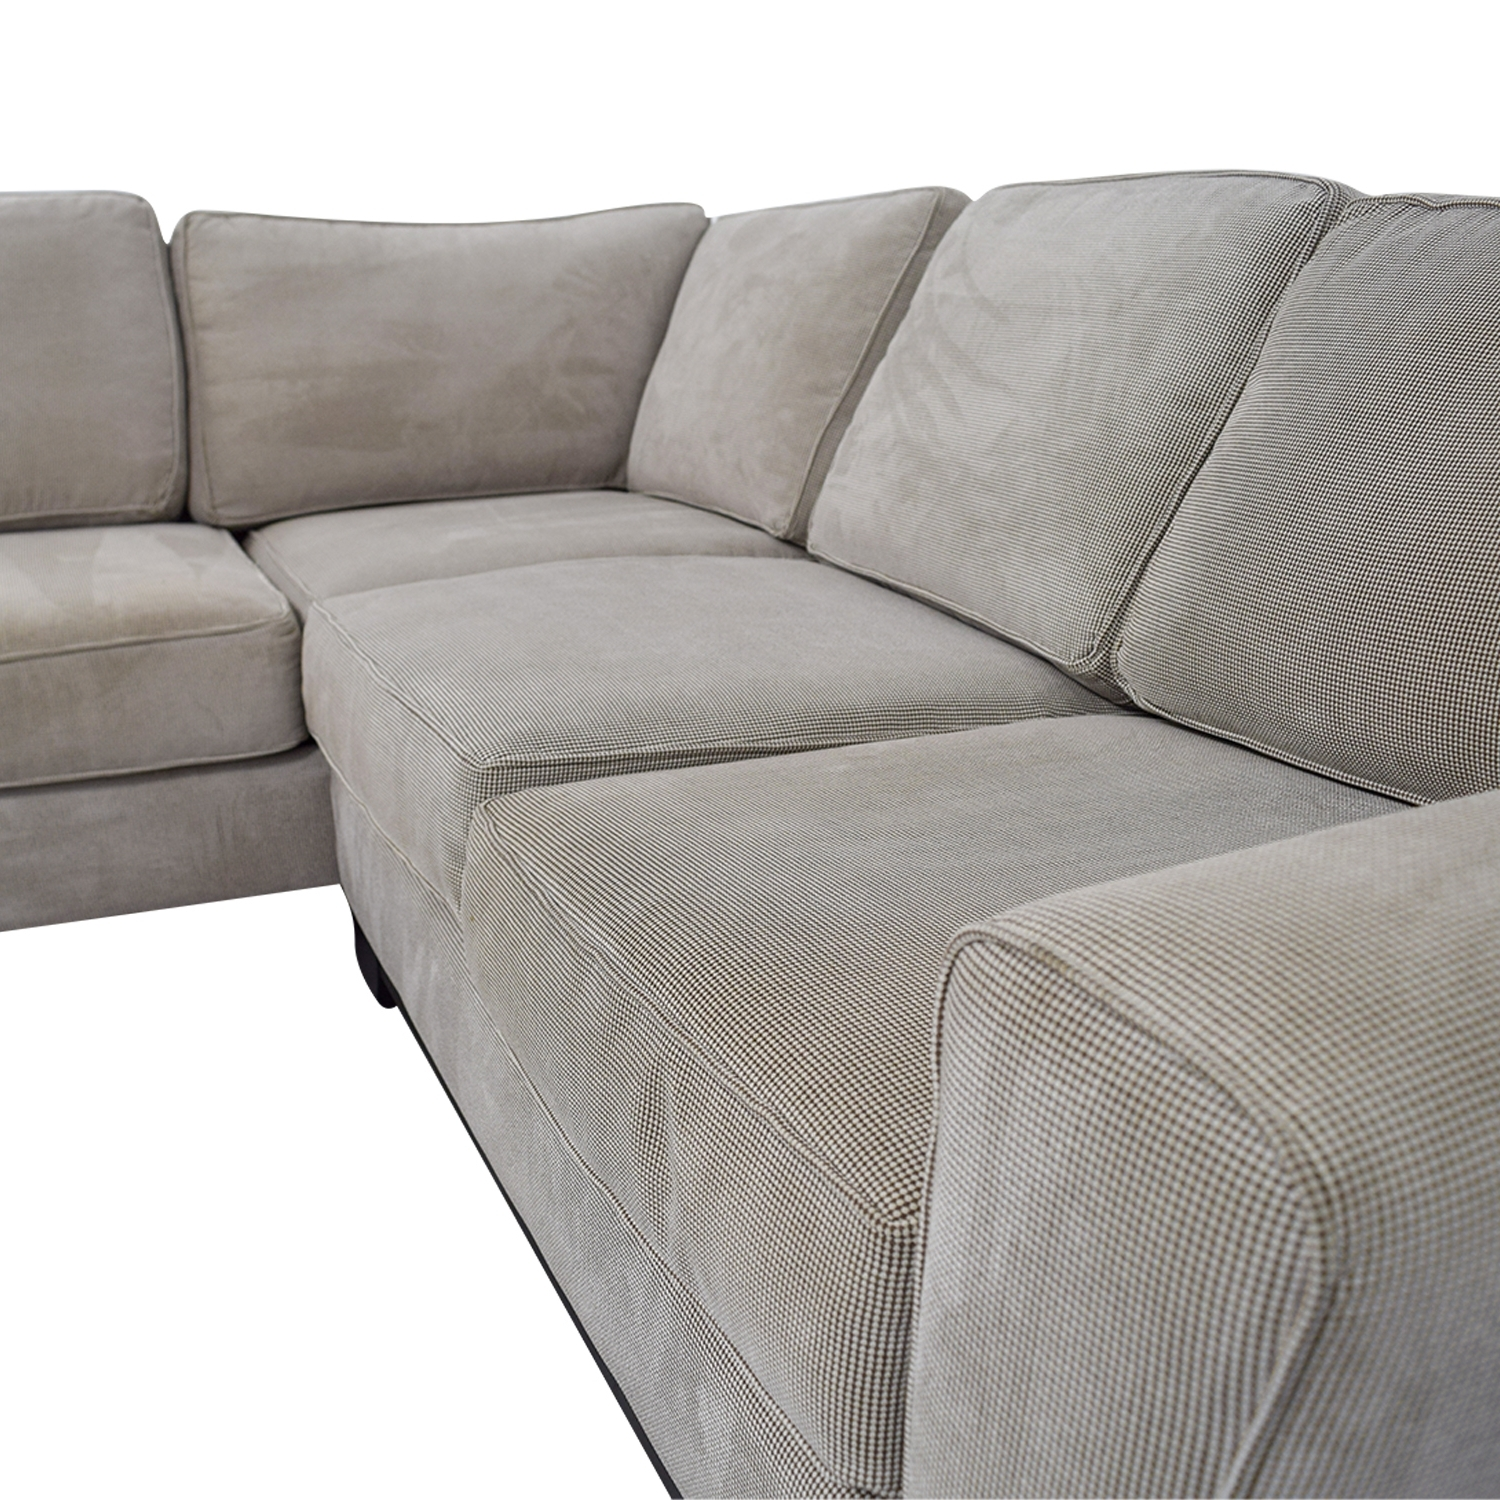 [%80% Off – Jordan's Furniture Jordan's Furniture Beige L Shaped With Regard To Trendy Jordans Sectional Sofas|Jordans Sectional Sofas With Trendy 80% Off – Jordan's Furniture Jordan's Furniture Beige L Shaped|2018 Jordans Sectional Sofas Regarding 80% Off – Jordan's Furniture Jordan's Furniture Beige L Shaped|Recent 80% Off – Jordan's Furniture Jordan's Furniture Beige L Shaped With Jordans Sectional Sofas%] (View 4 of 15)